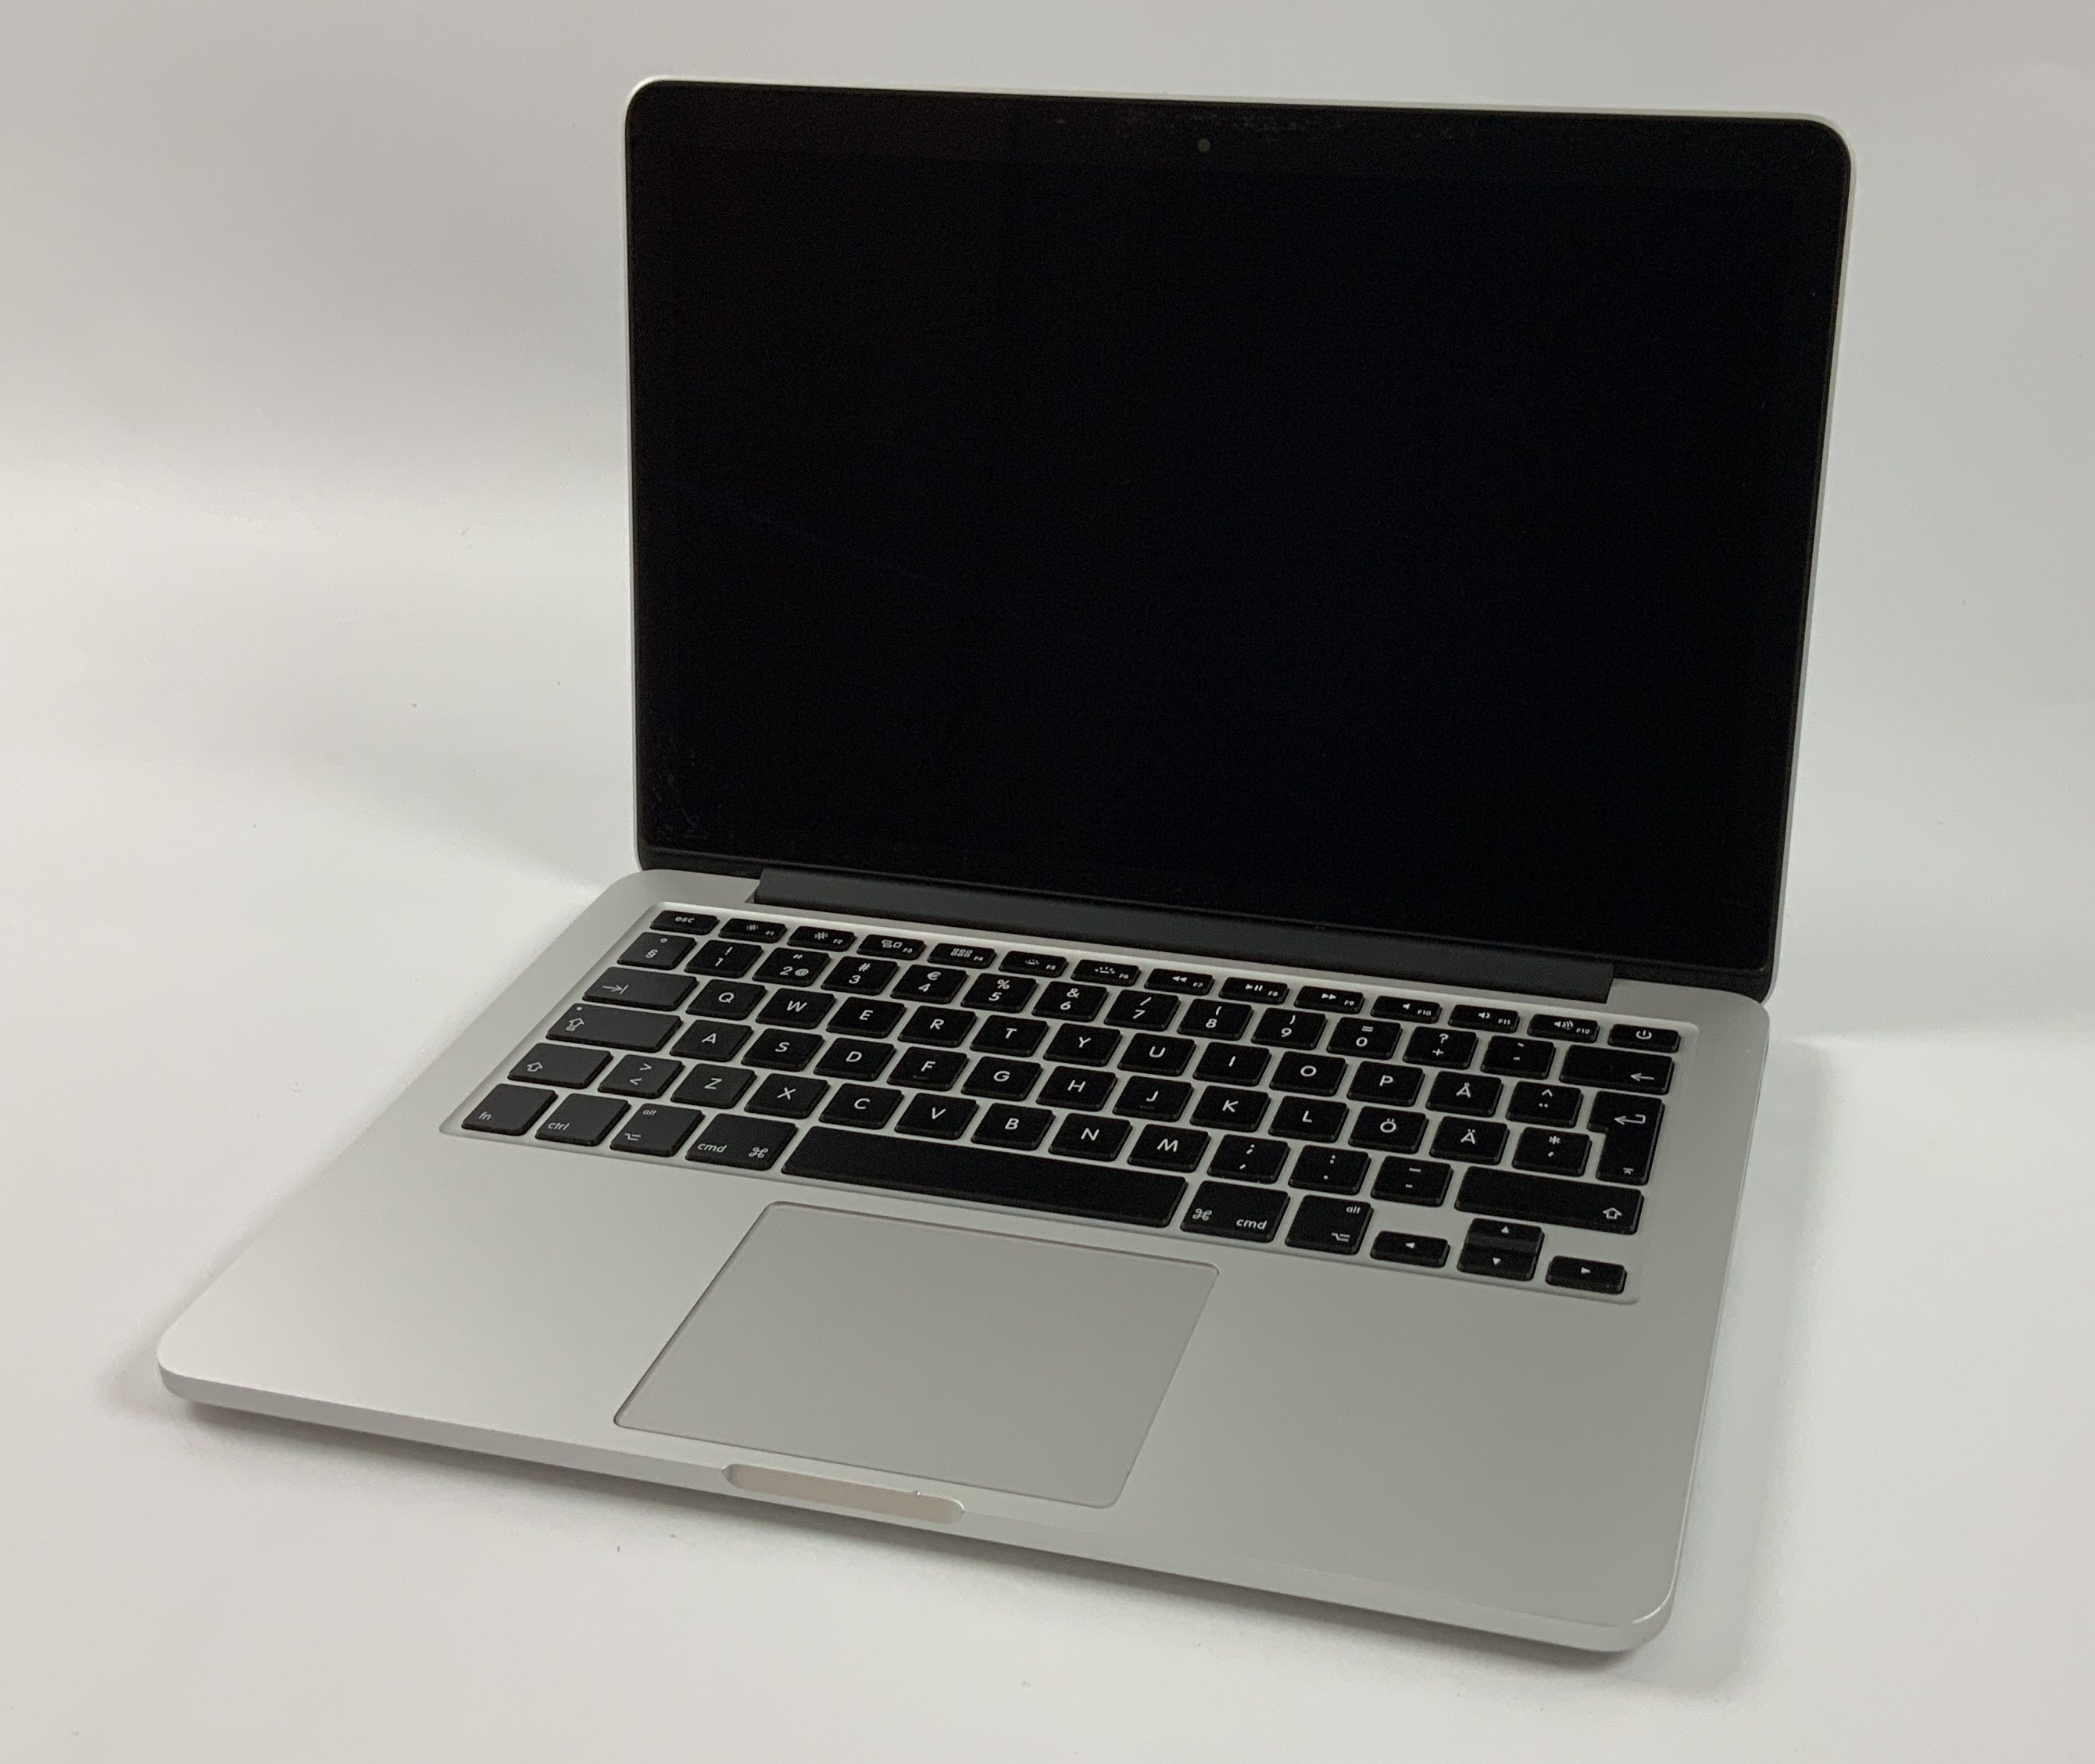 "MacBook Pro Retina 13"" Early 2015 (Intel Core i5 2.9 GHz 8 GB RAM 512 GB SSD), Intel Core i5 2.9 GHz, 8 GB RAM, 512 GB SSD, Kuva 1"